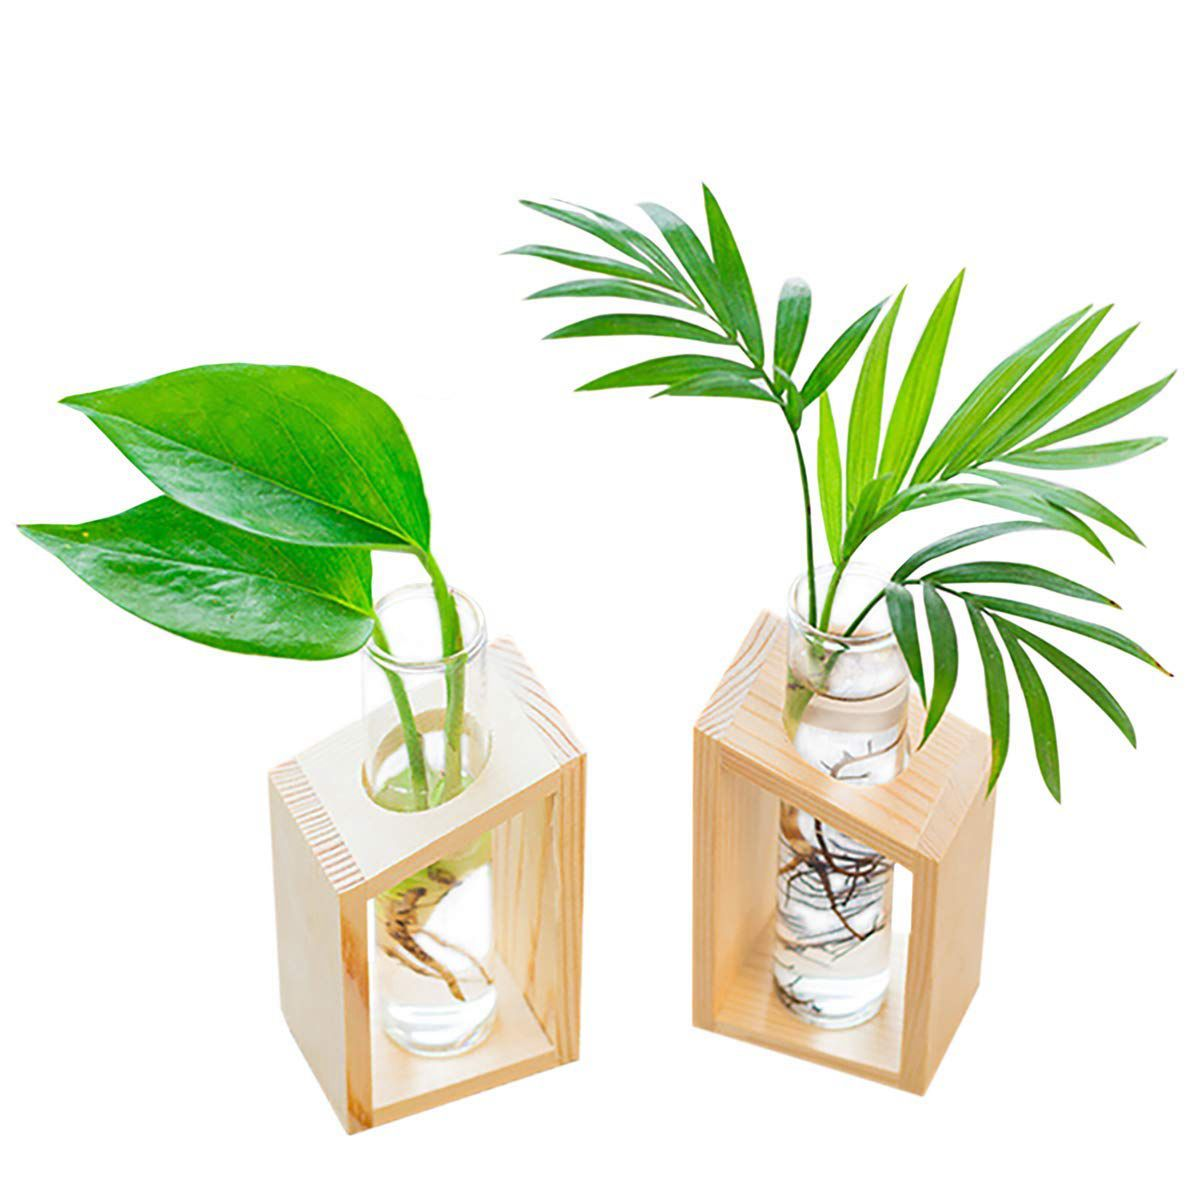 Hot Sale Crystal Glass Test Tube Vase in Wooden Stand Flower Pots for Hydroponic Plants Home Garden Decoration Vases     - title=